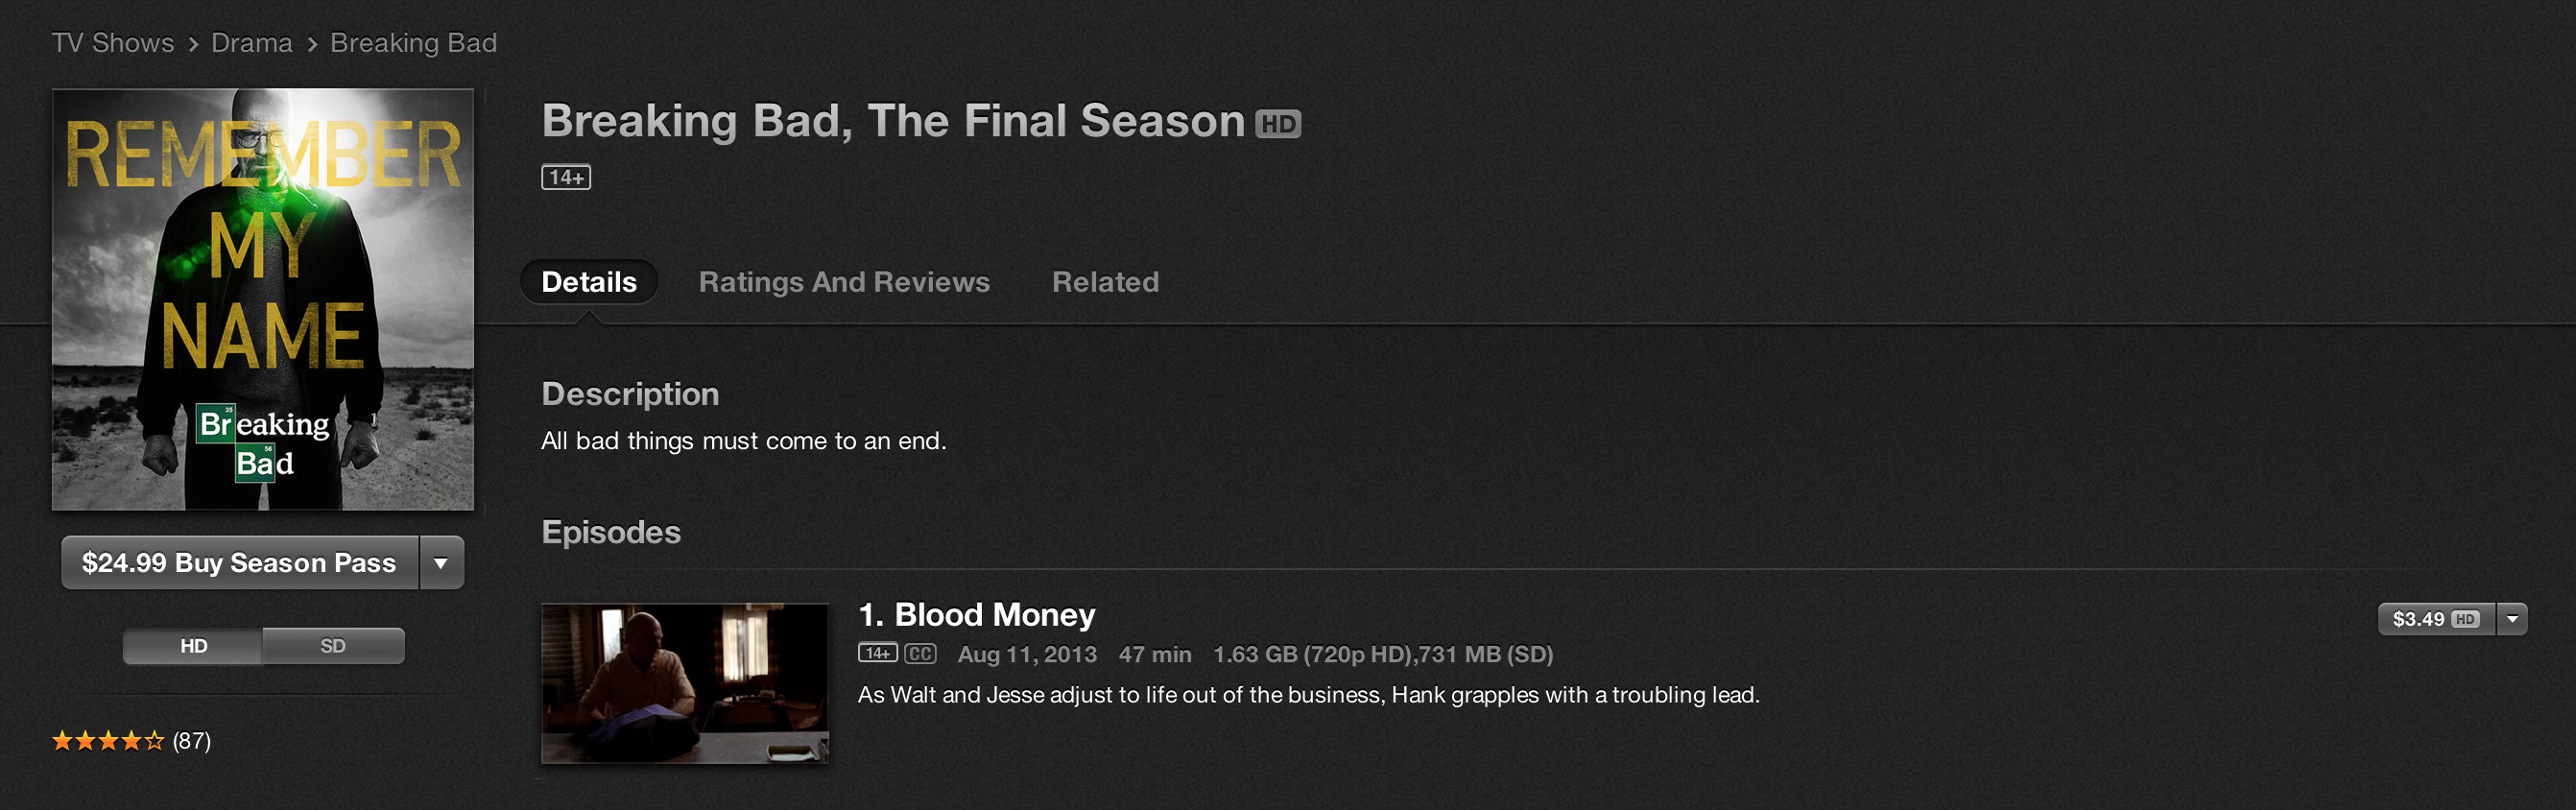 Breaking-Bad-The-Final-Season